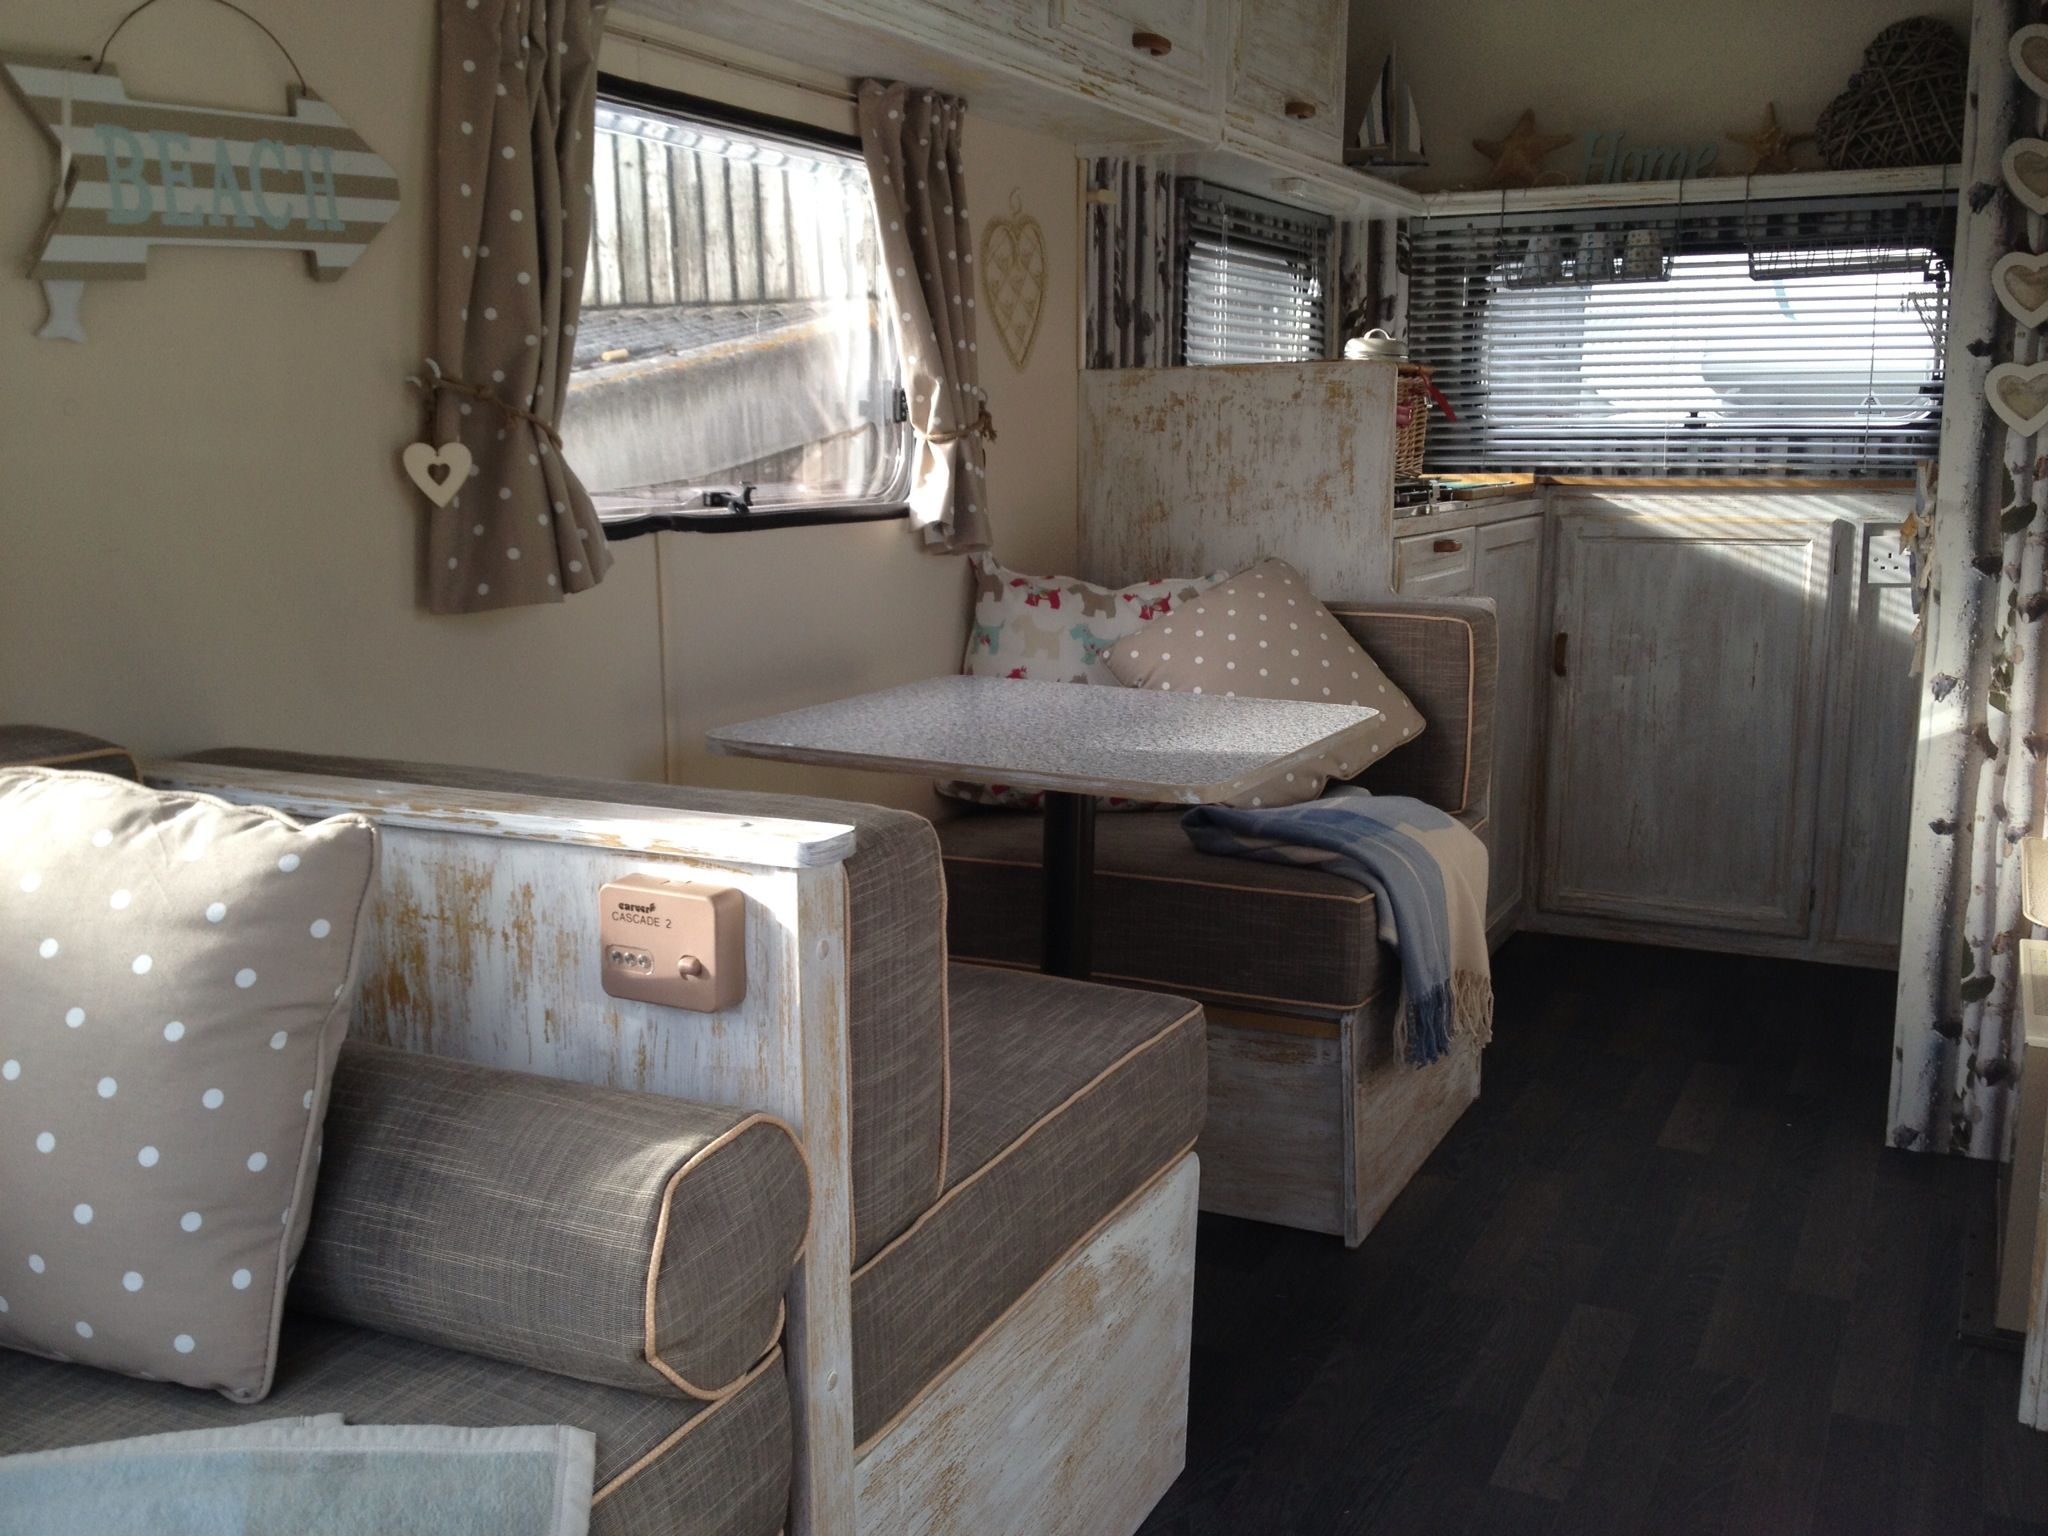 the flooring was finally fitted this week caravan revamp almost complete barn ideas. Black Bedroom Furniture Sets. Home Design Ideas